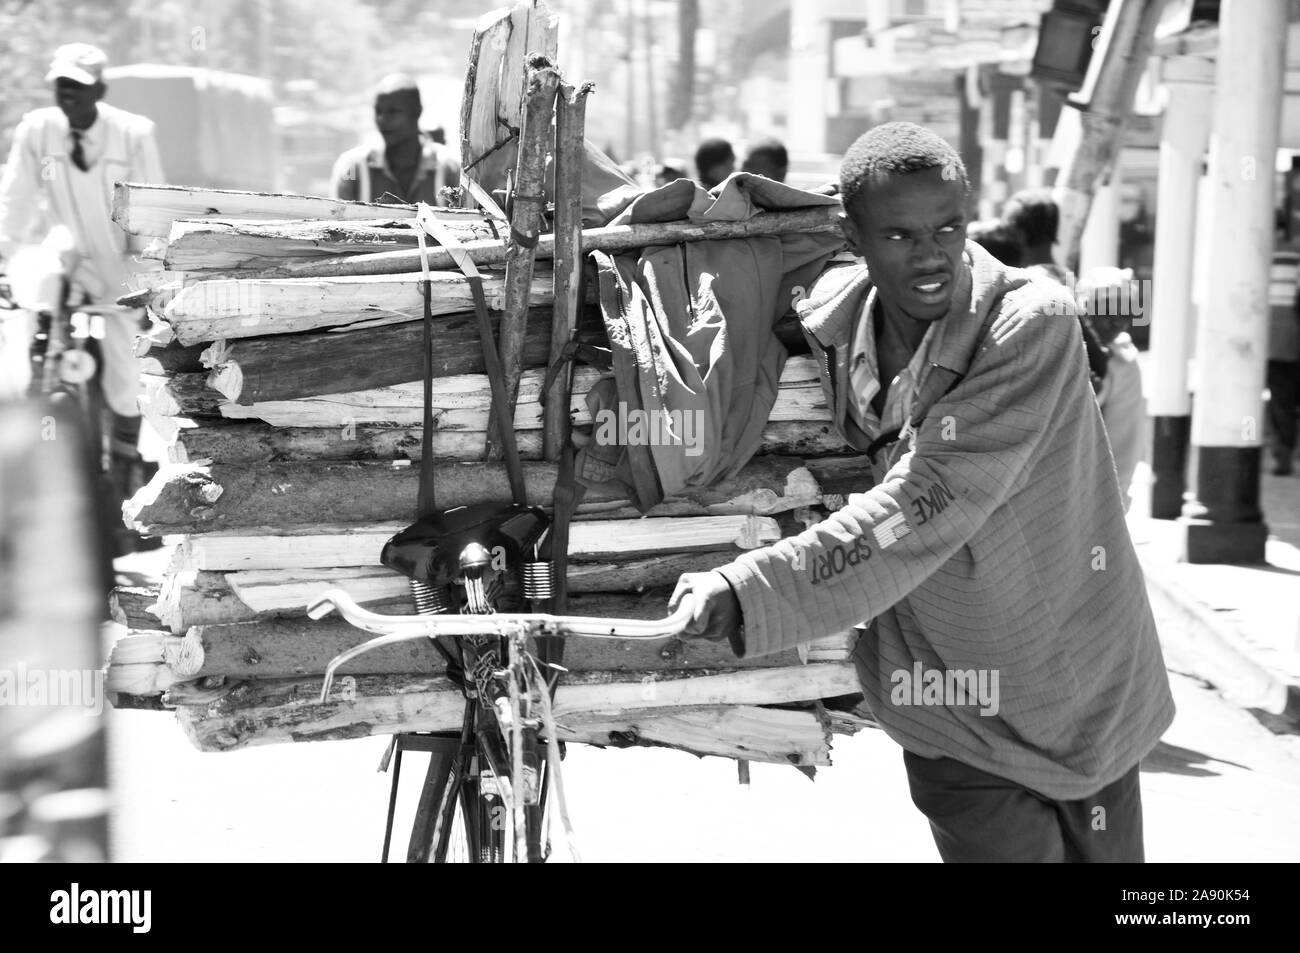 Rift Valley: A young man carring wood on his bycicle trough the streets of Eldoret city Stock Photo